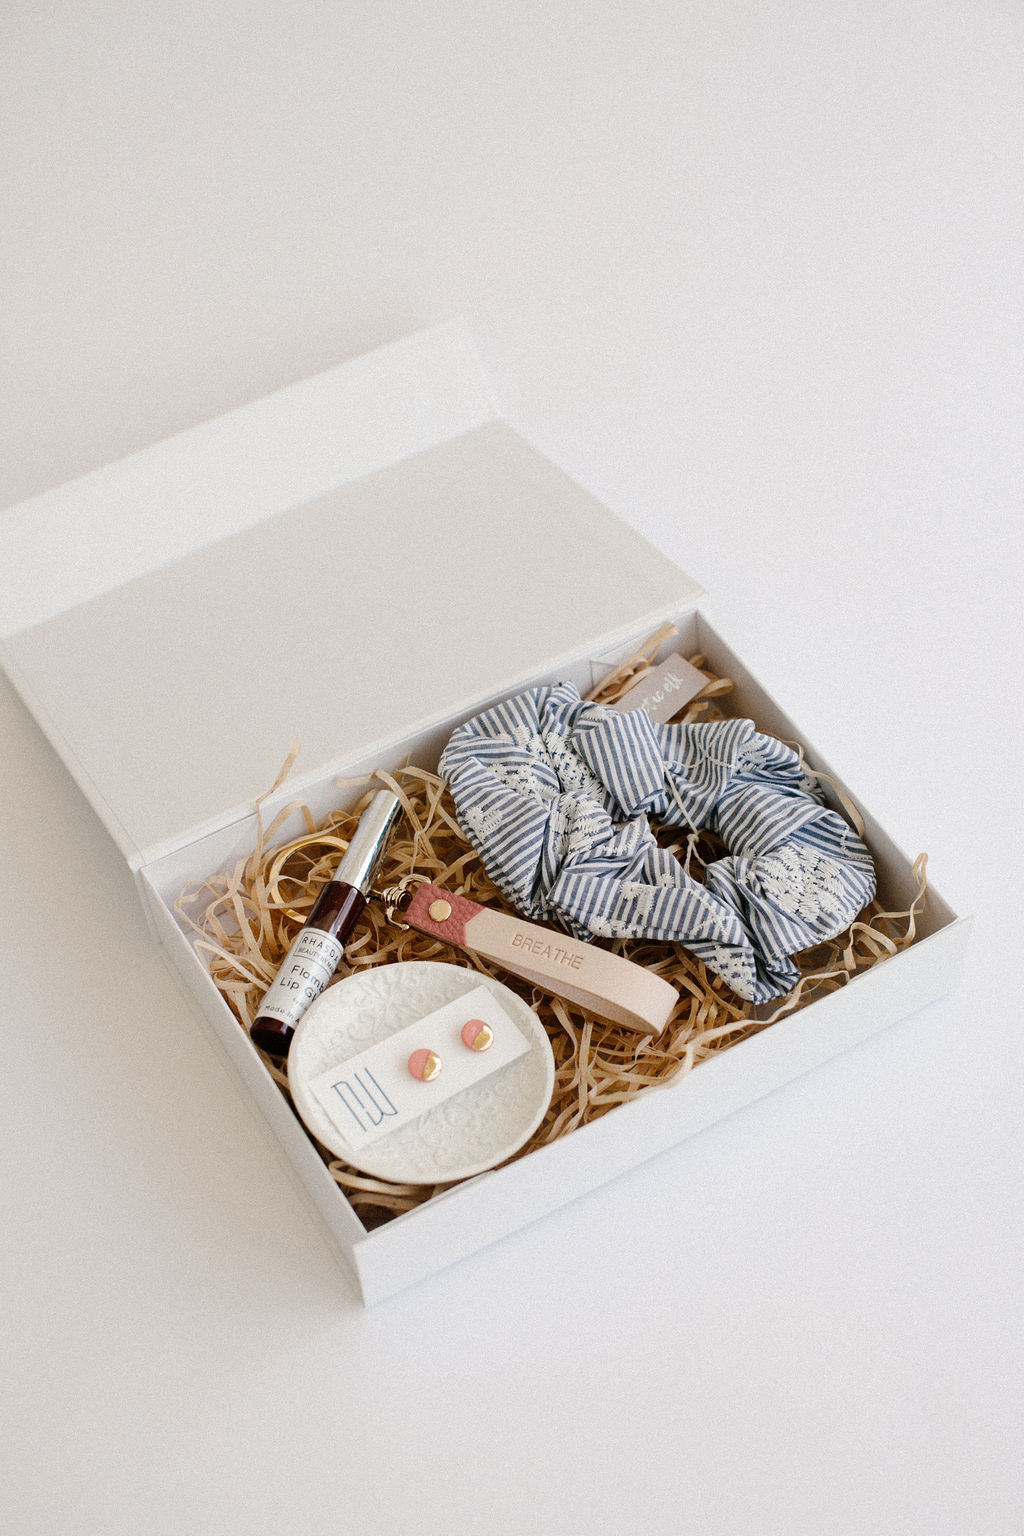 Breathe Gift Box by Indigo Bay